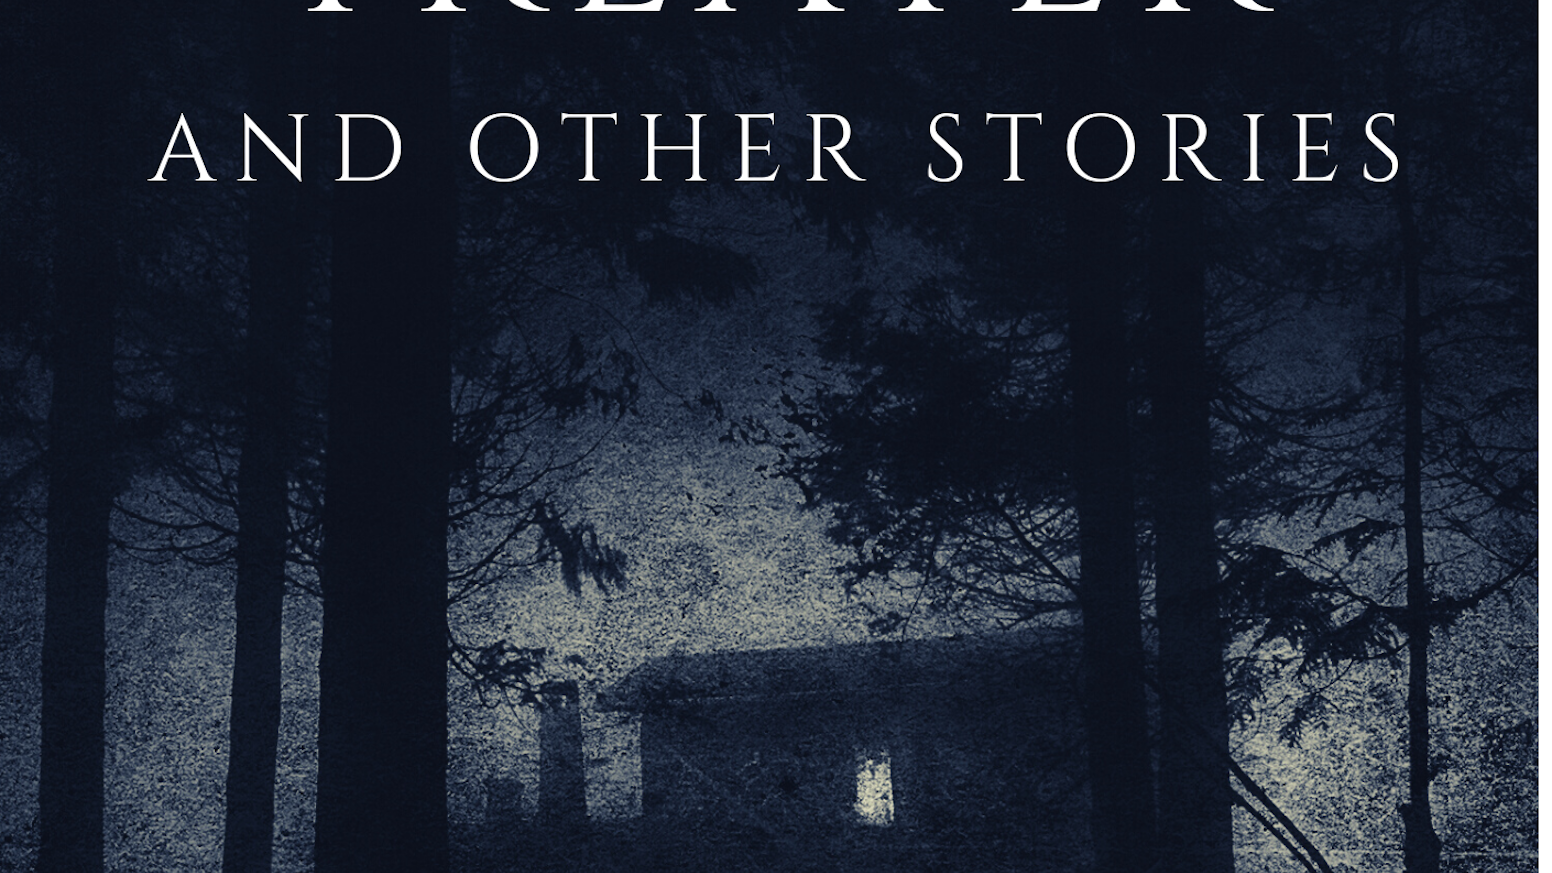 A collection of spooky short stories sure to thrill, chill, and delight you.